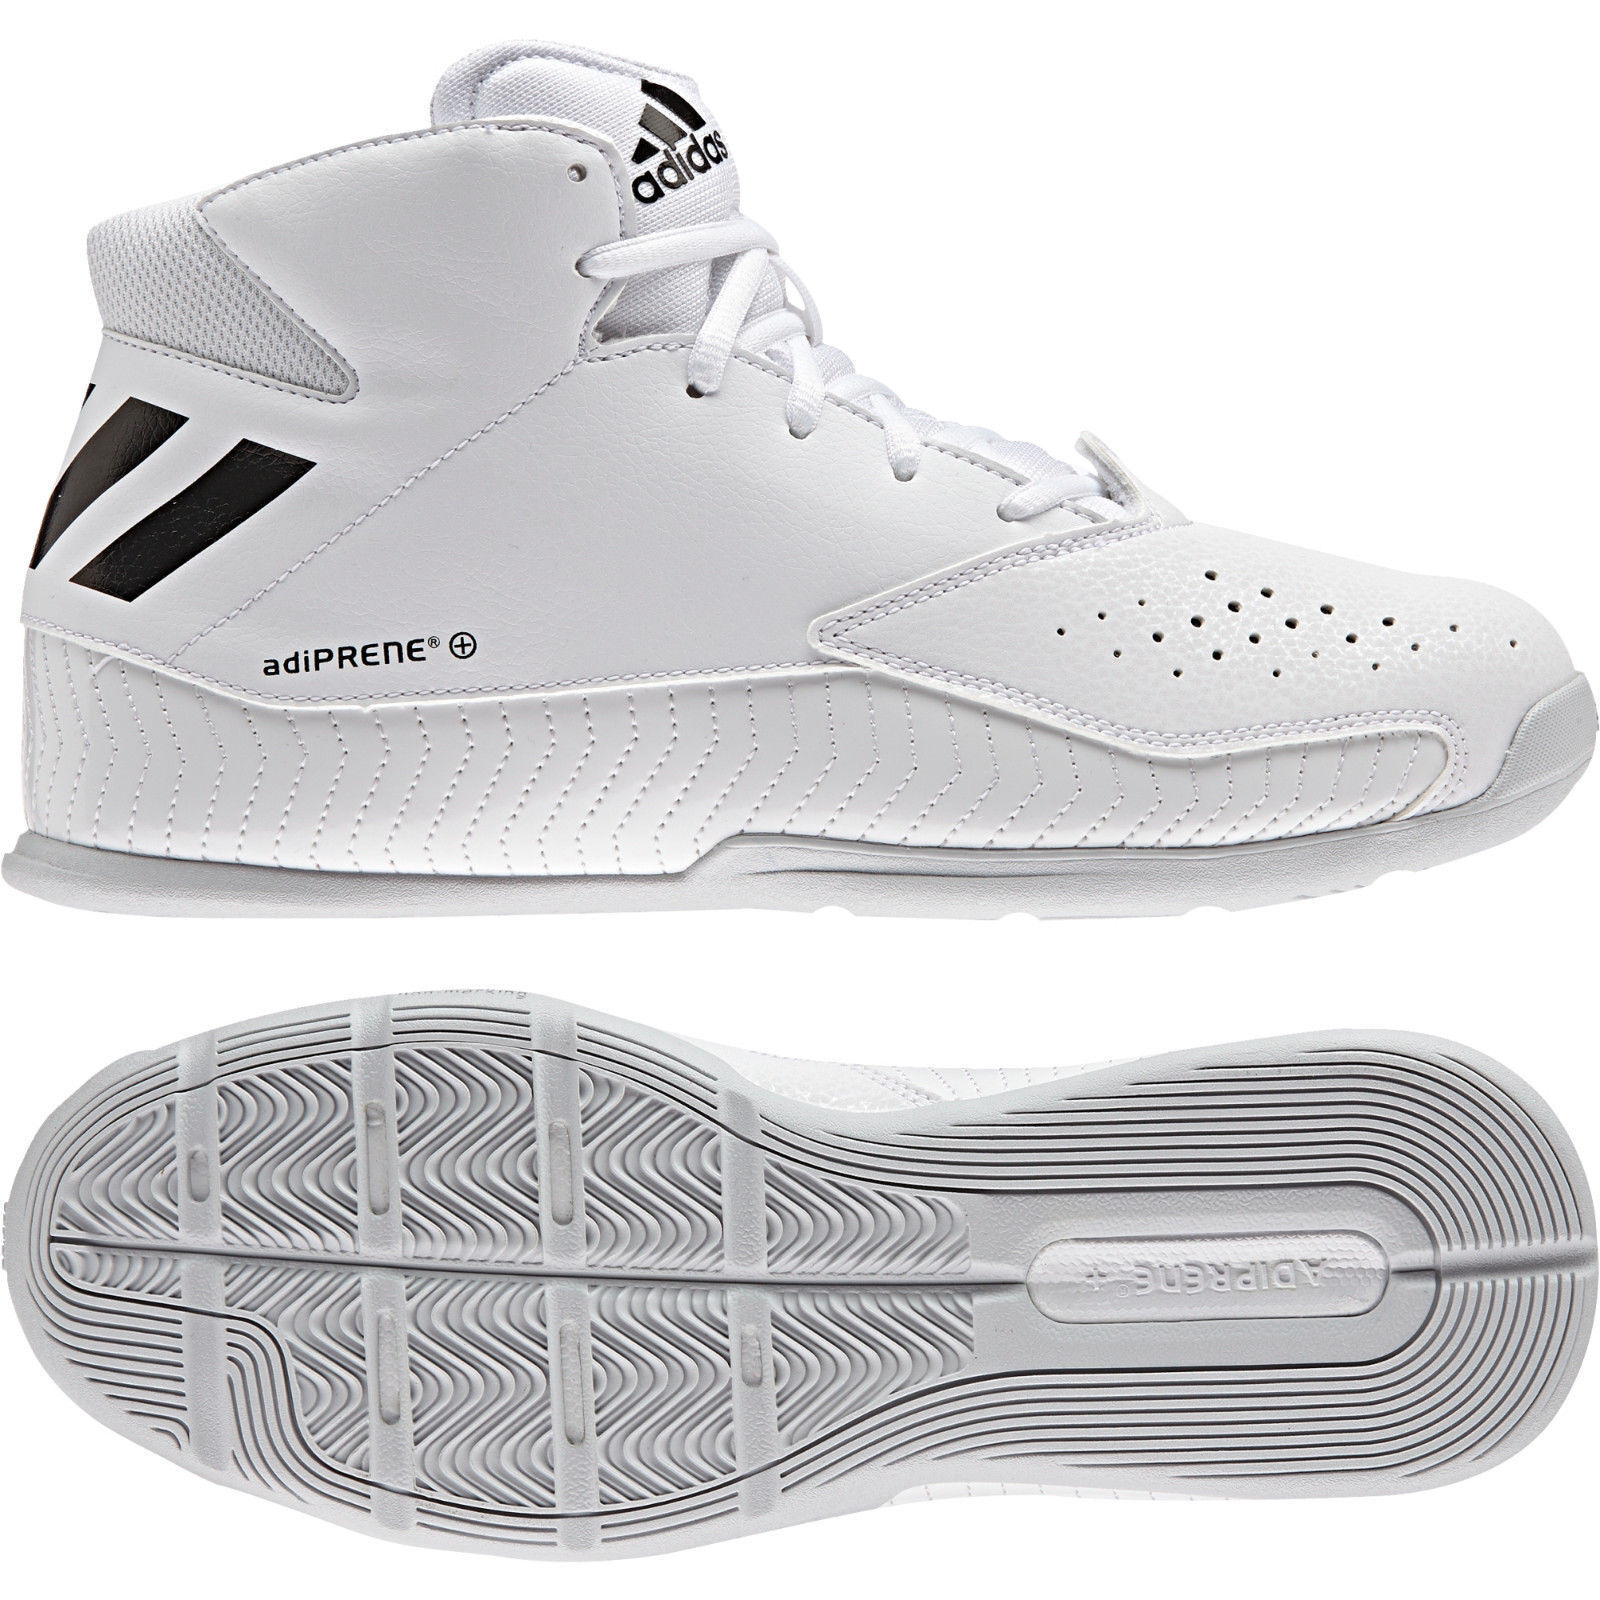 Adidas Next Level Speed 5 Basketball Schuhes  (:)